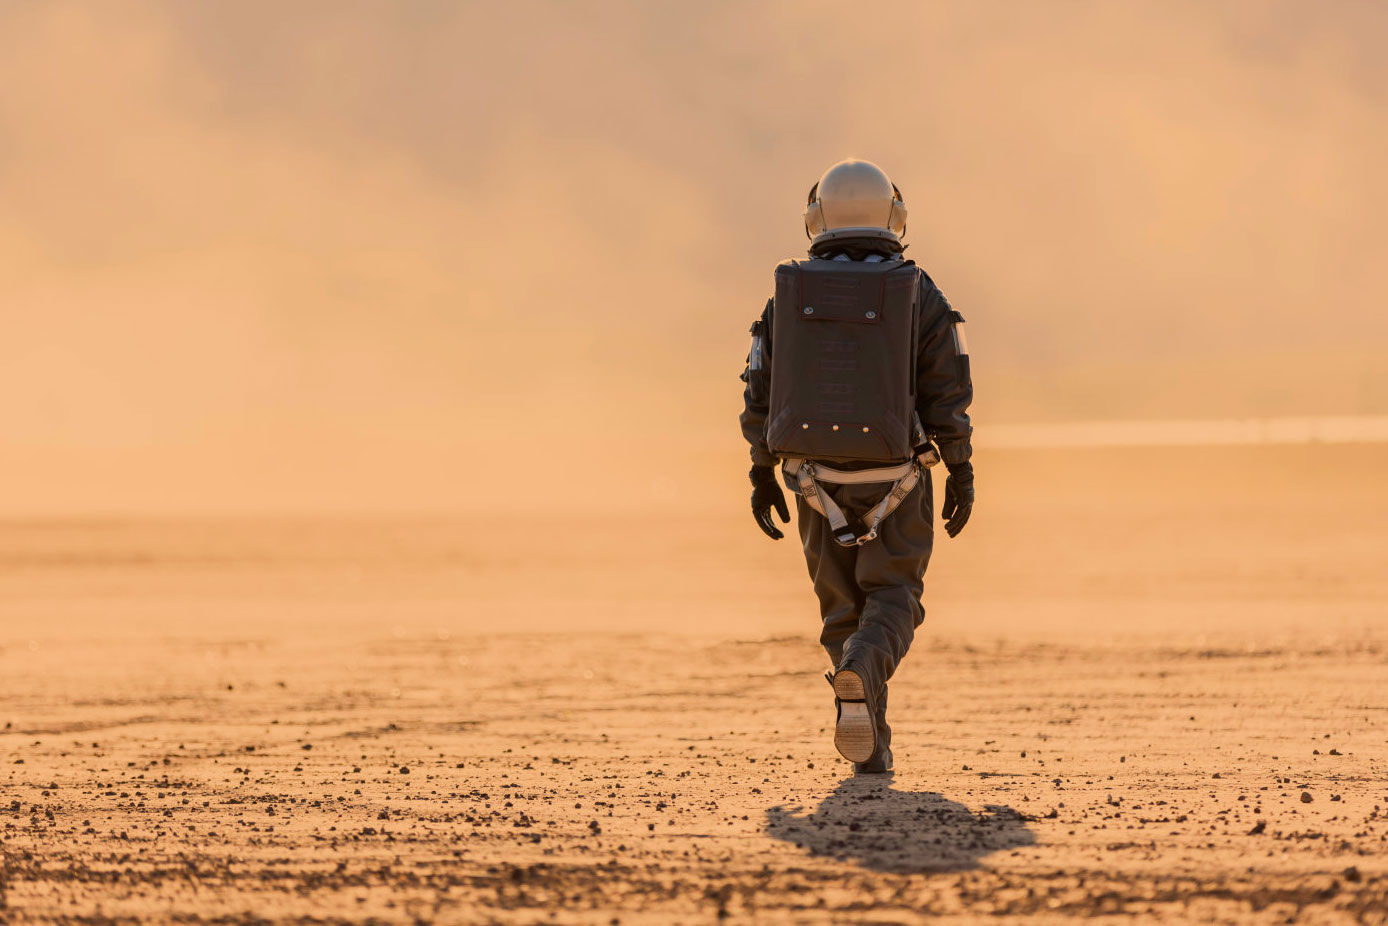 Mars One dreams plummet back to Earth as company goes bankrupt